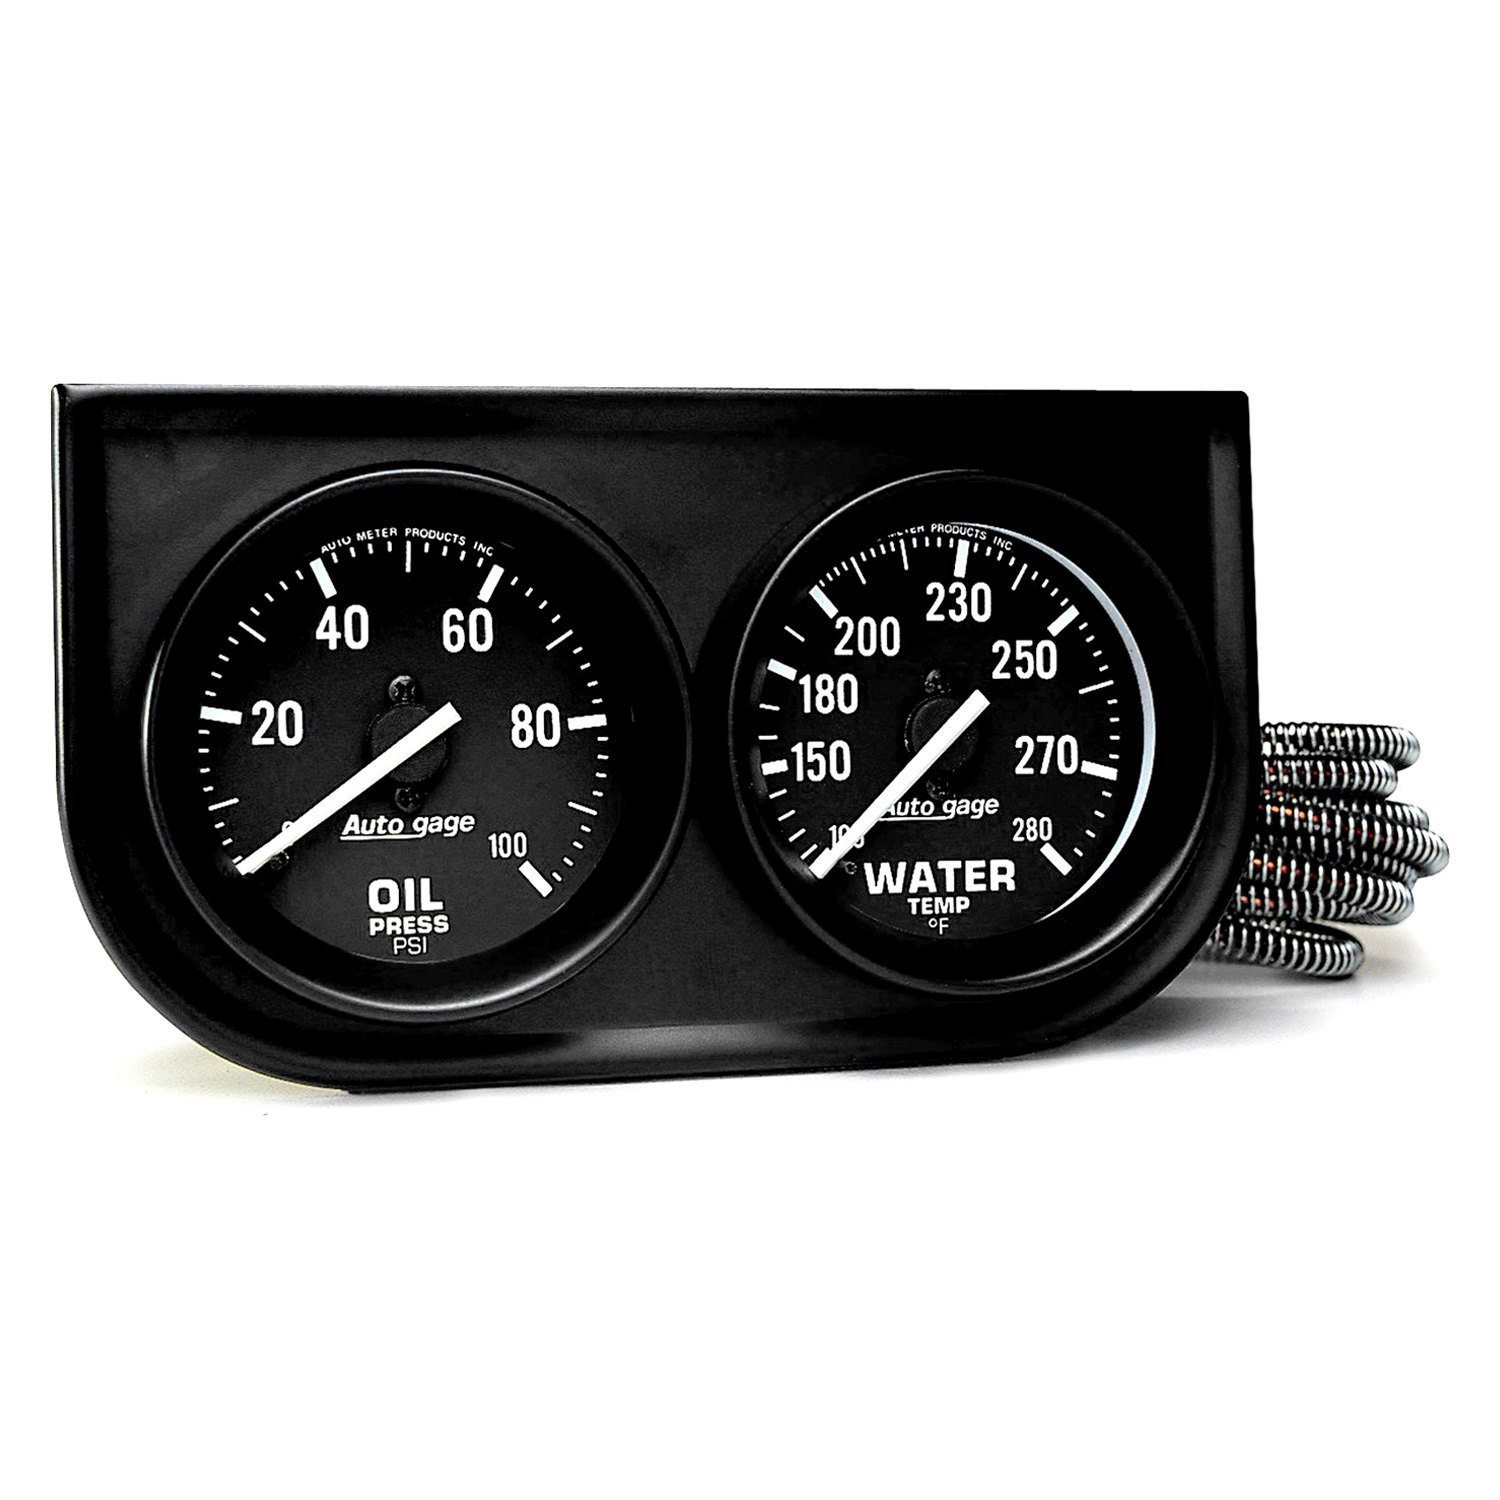 Auto Gage Gauges : Auto meter gage™ gauge console kit